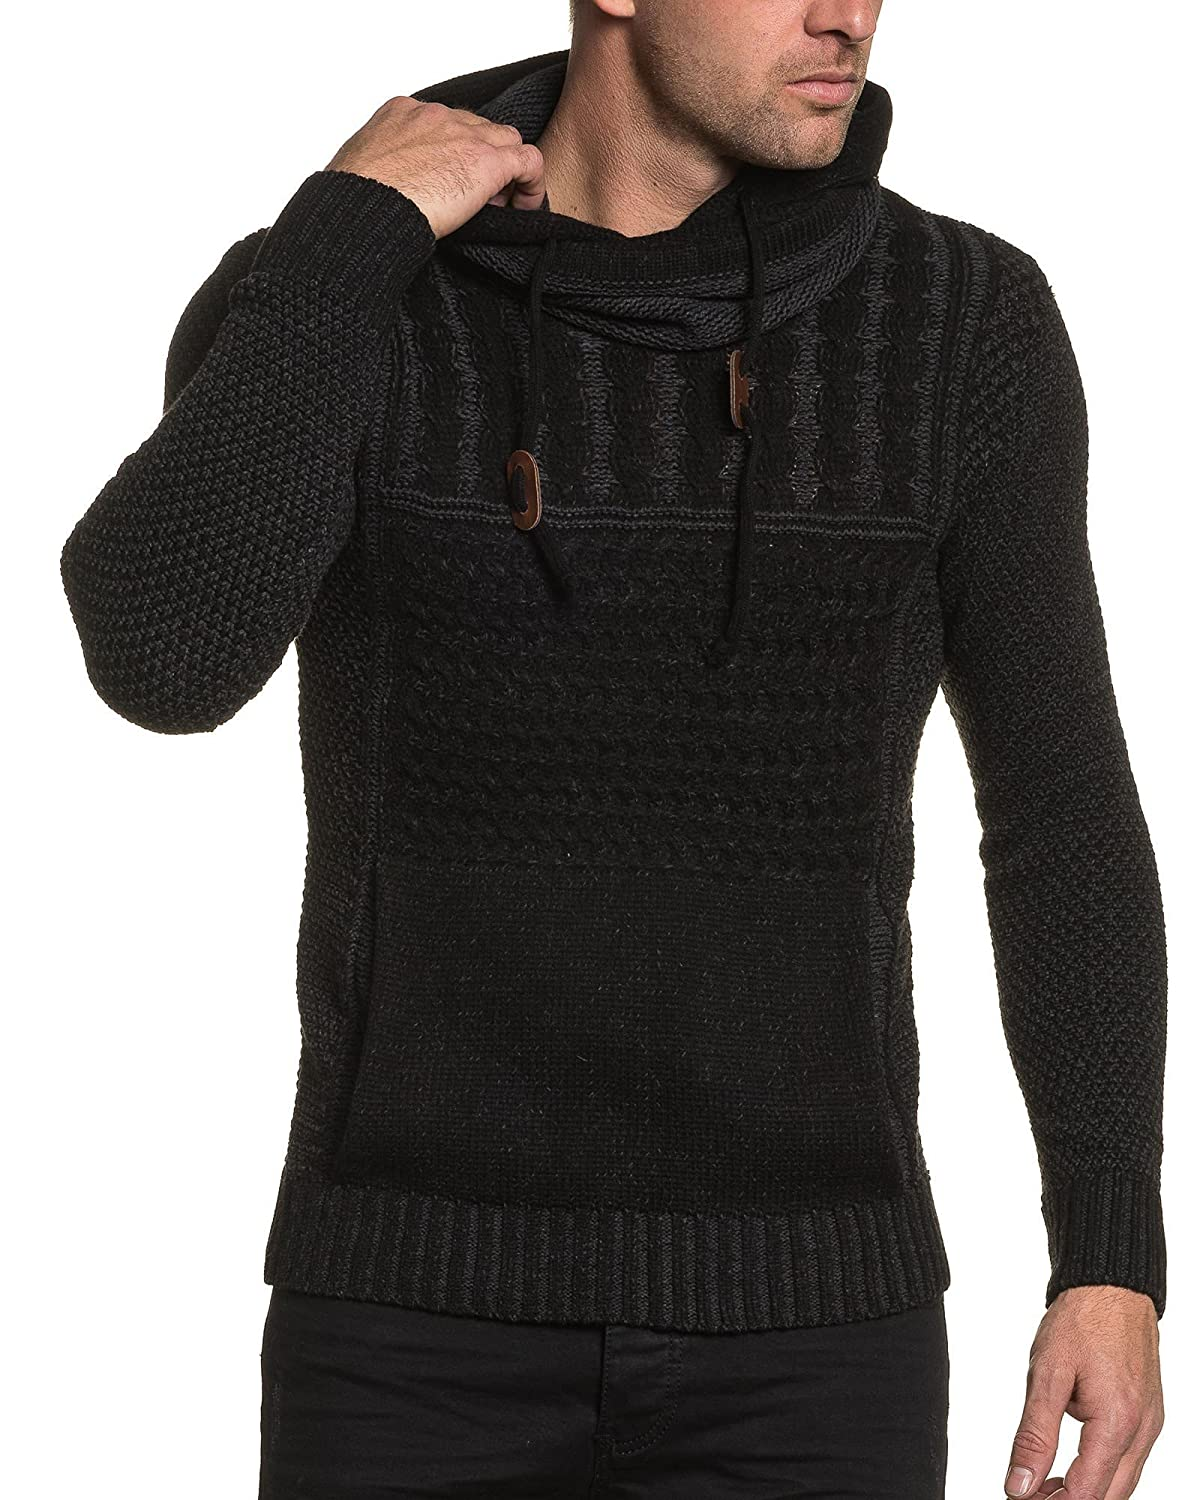 BLZ jeans - Men&#39s Sweaters black and twisted mesh cowl neck sweatshirt